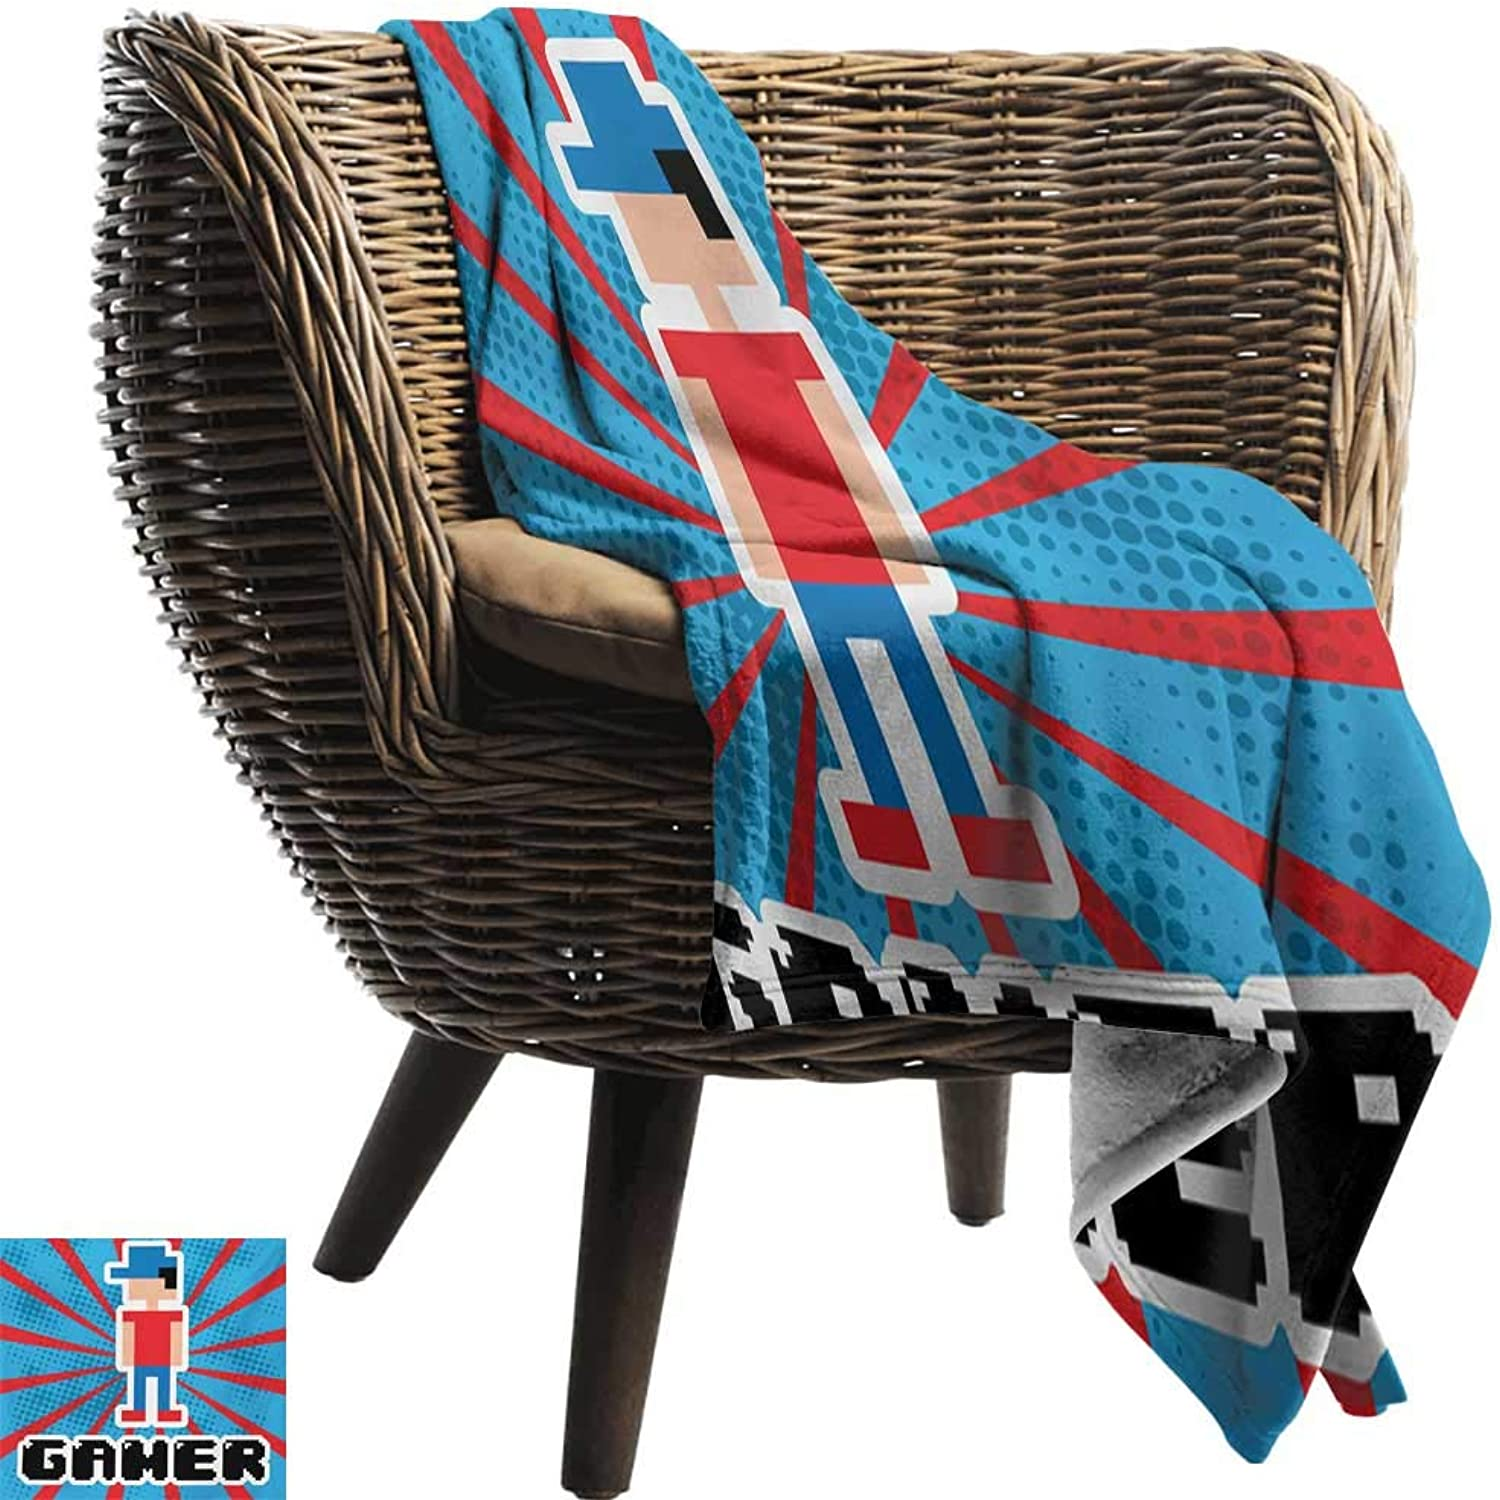 BelleAckerman Cool Blanket,Video Games,bluee and Red Striped Boom Beams Retro 90s Toys Boy with Cap,Vermilion bluee White Black,for Bed & Couch Sofa Easy Care 50 x70